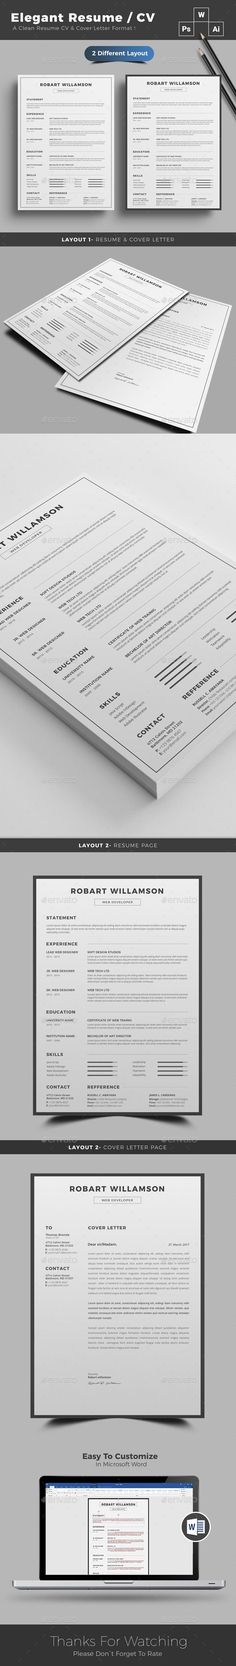 28 best Resume Templates images on Pinterest Cv template, Resume - different resume templates